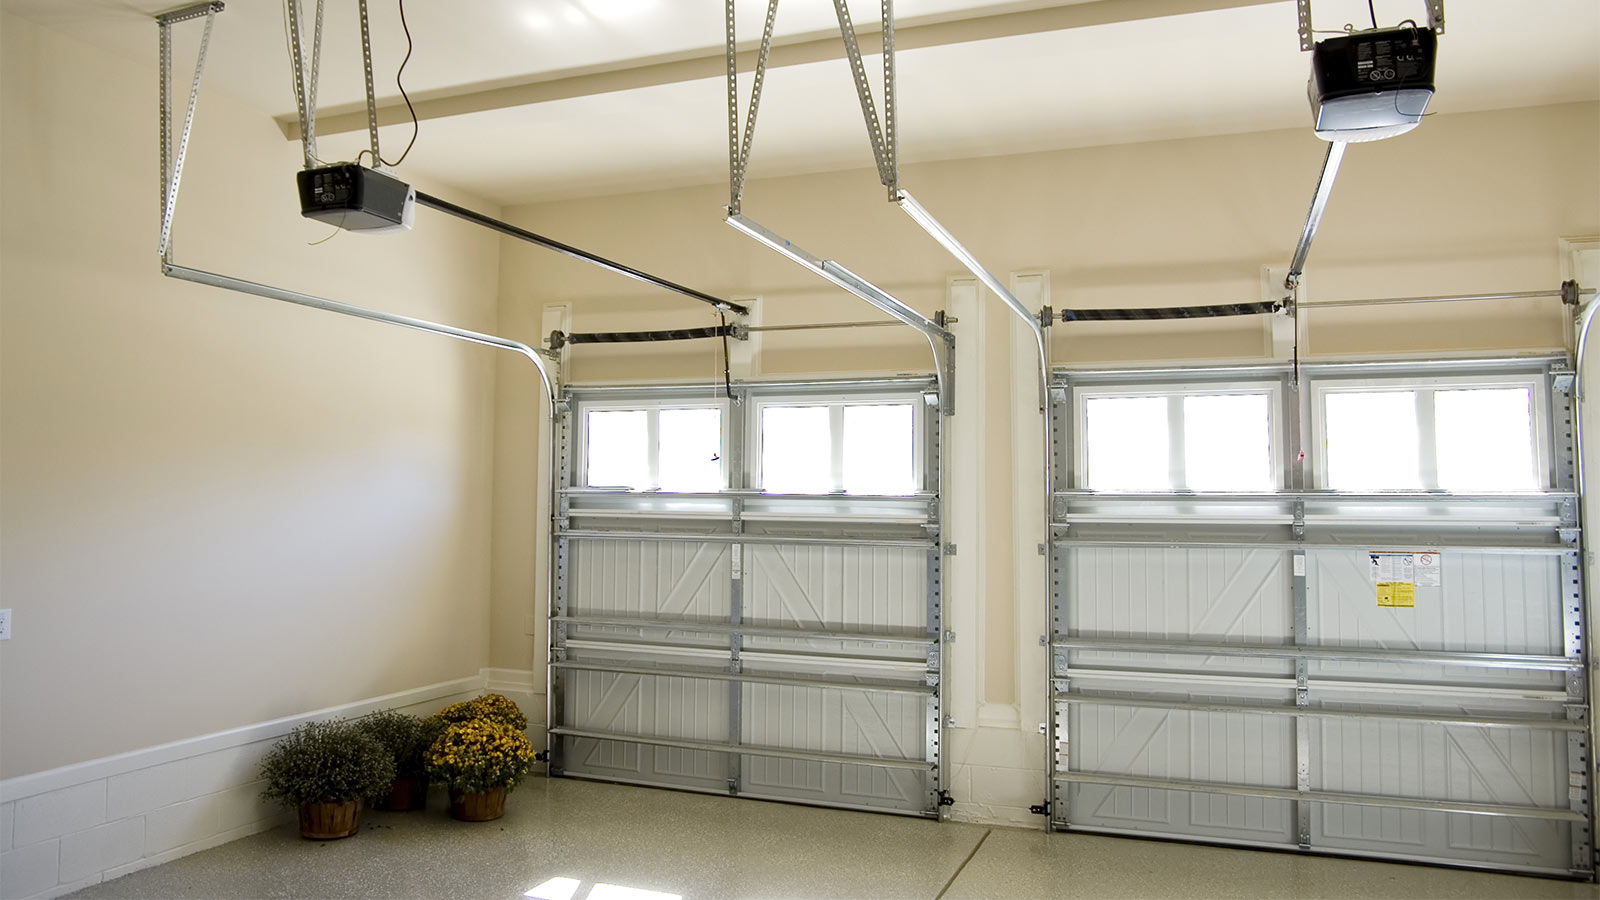 Sectional Garage Doors from Steel Security Doors Colchester suppliers.